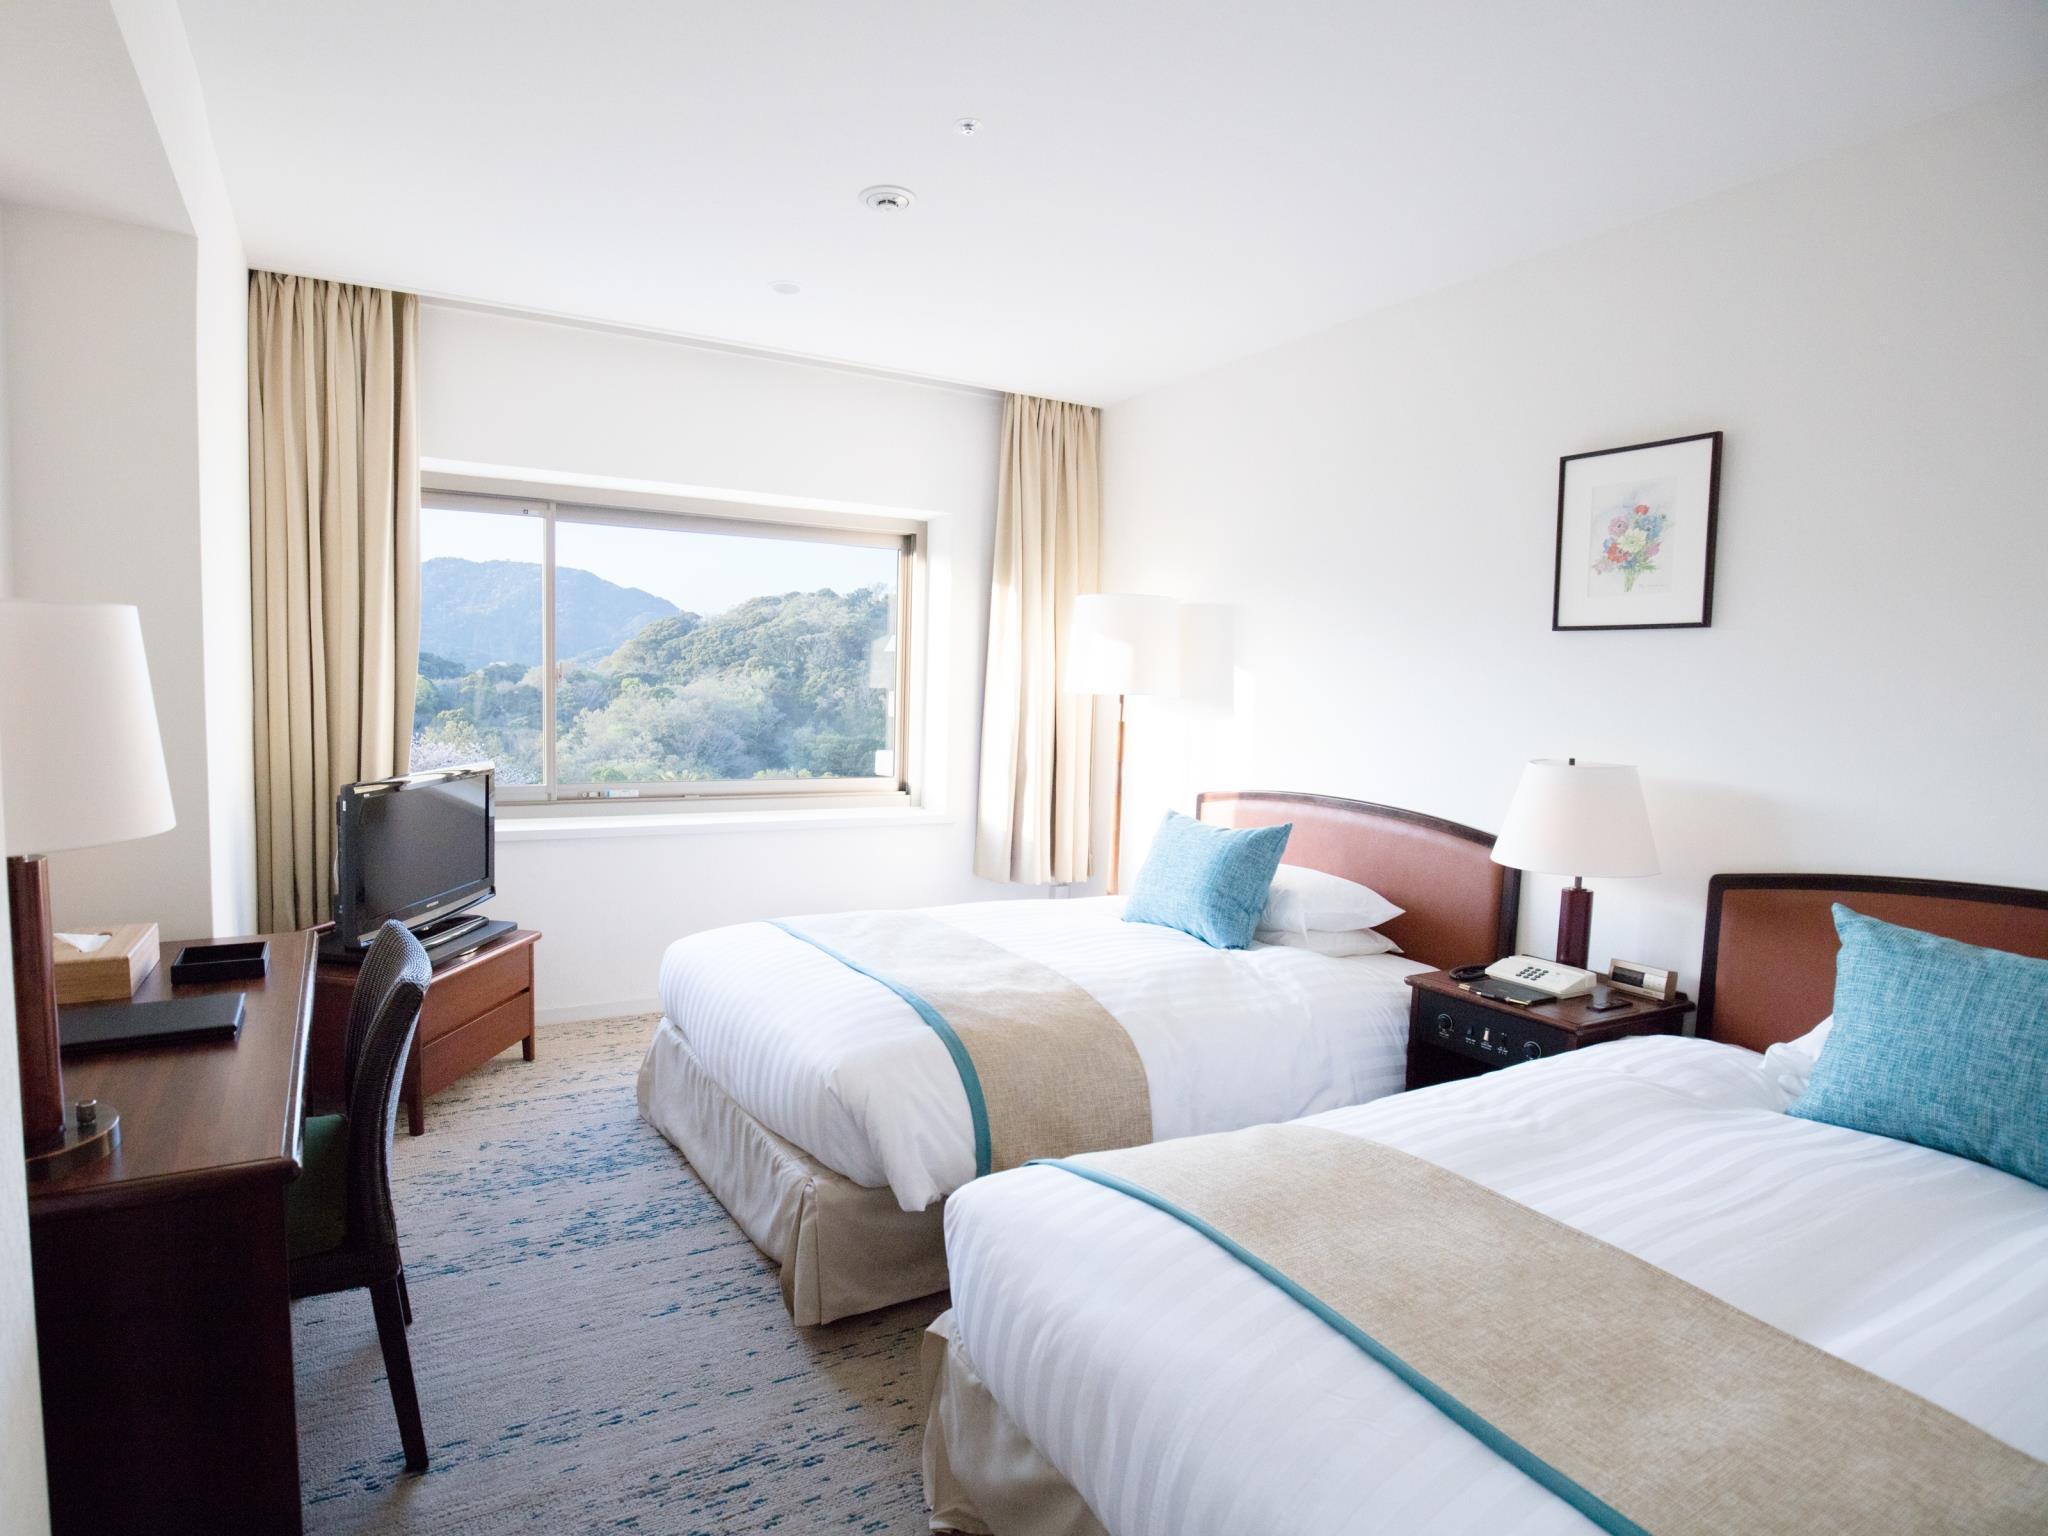 Kamar Standard Twin dengan Pemandangan Pegunungan (Standard Twin Room with Mountain View)